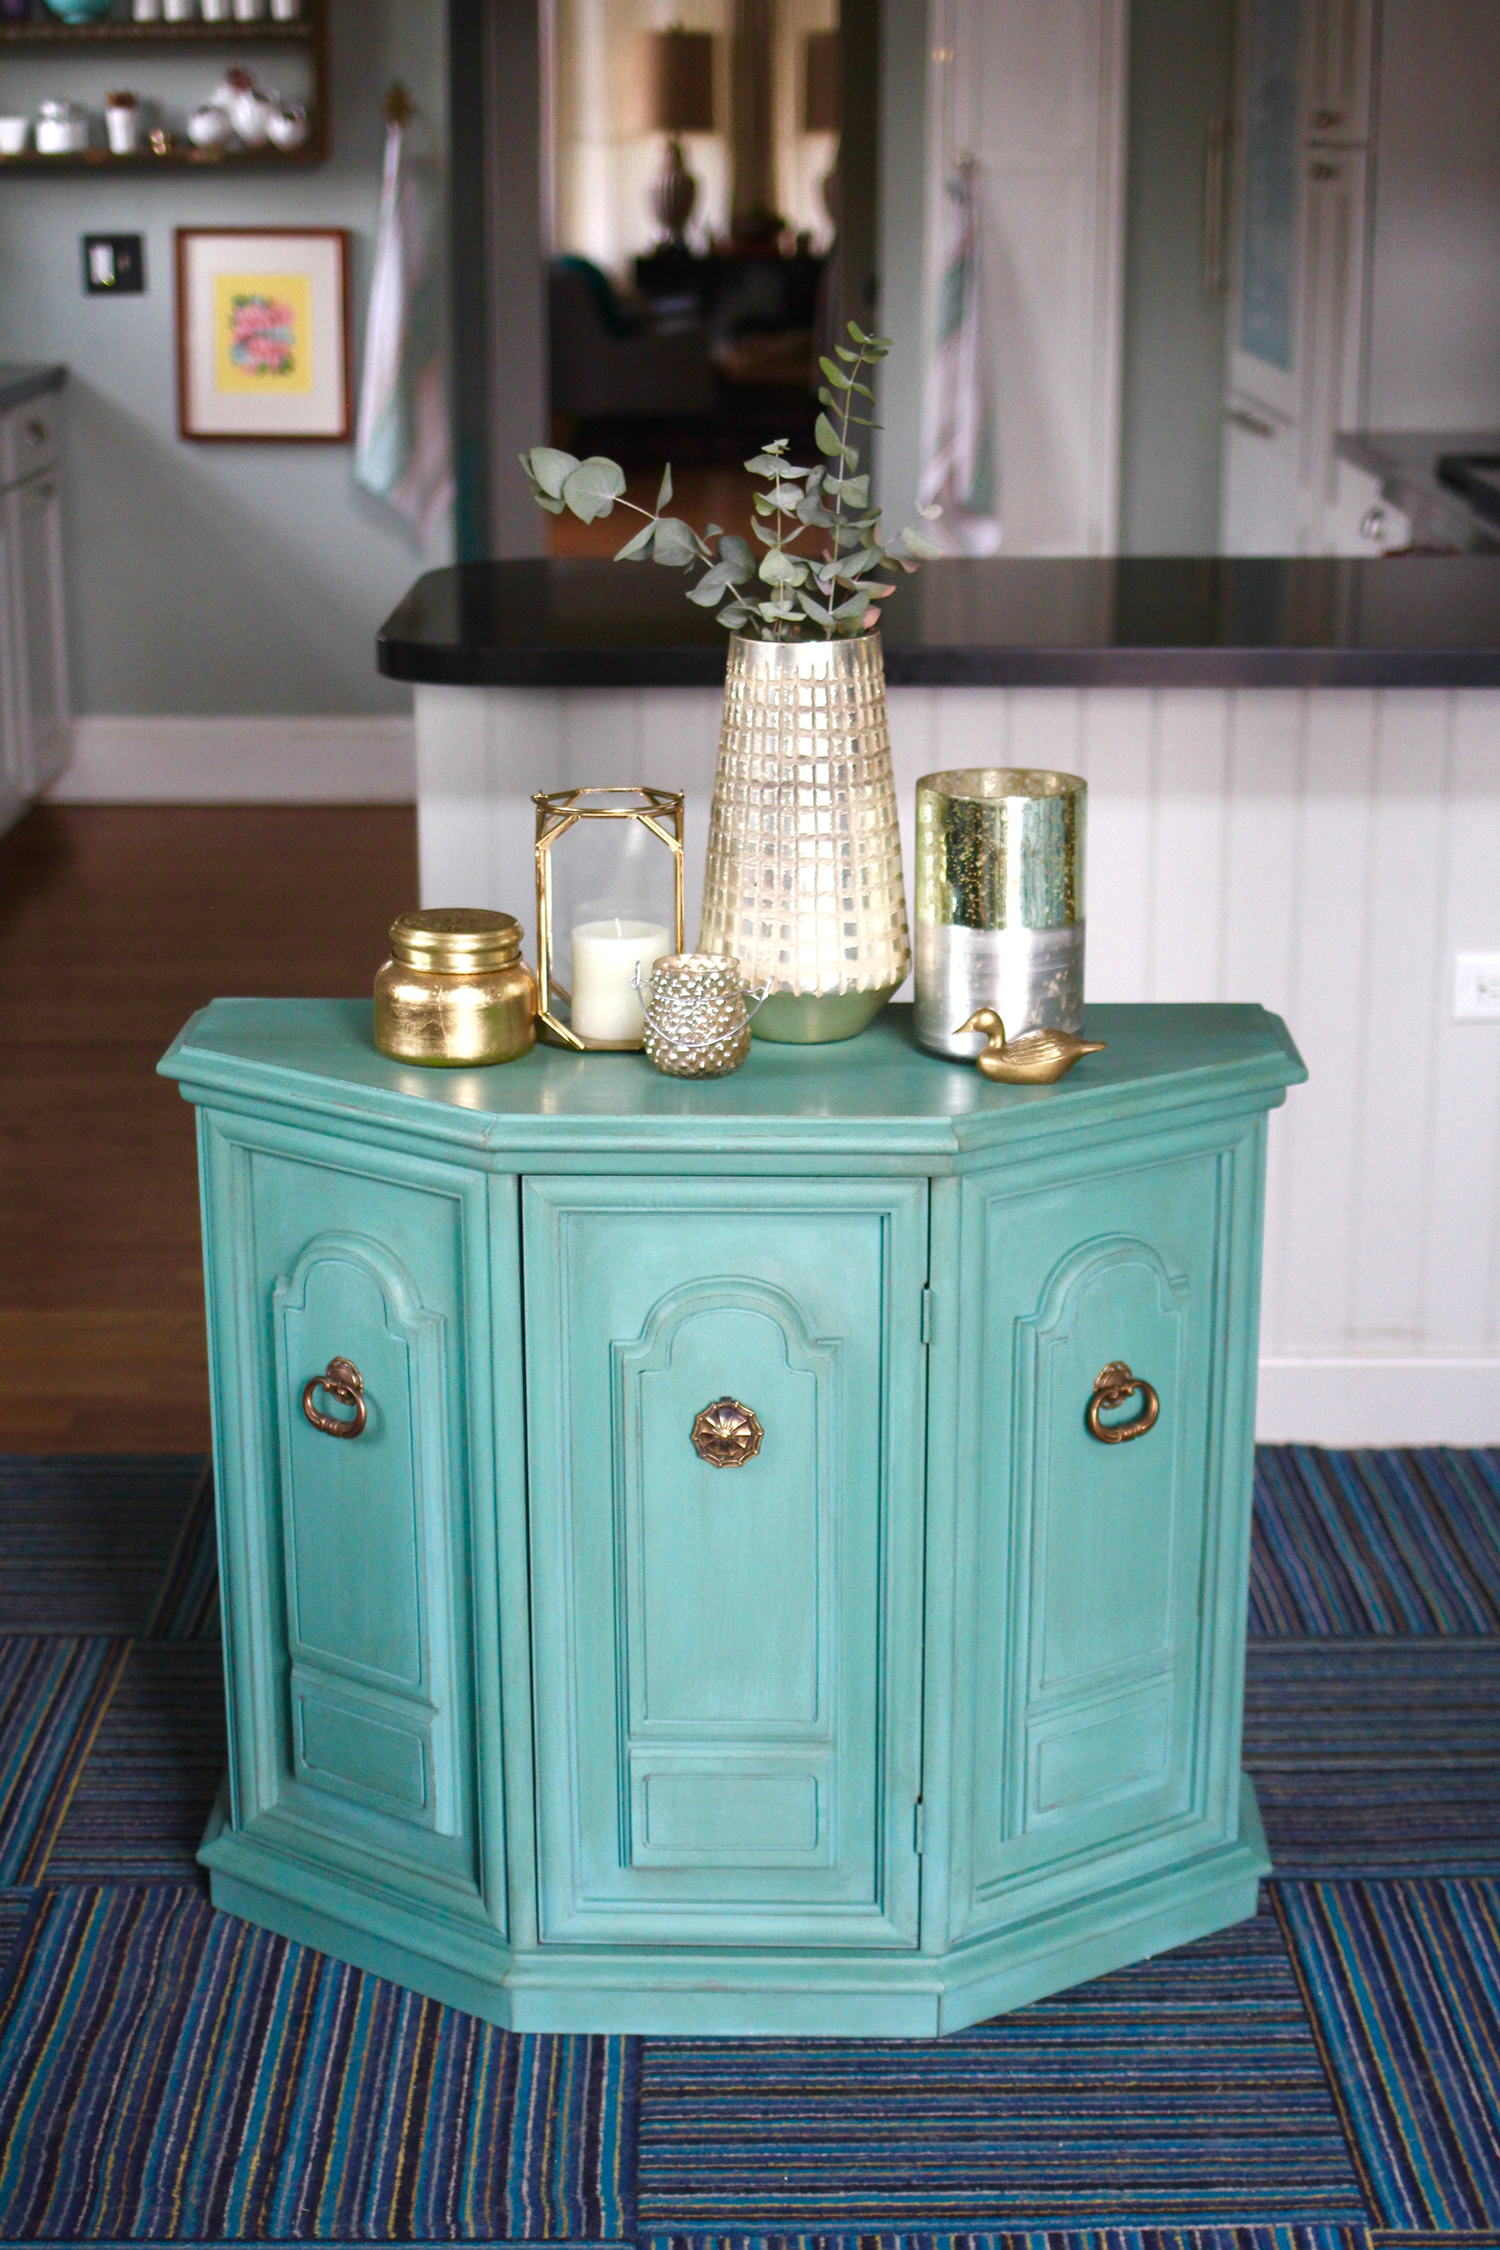 jo-torrijos-a-simpler-design-annie-sloan-chalk-paint-atlanta-painted-furniture-duck-egg-blue-amsterdam-green-console-8.jpg